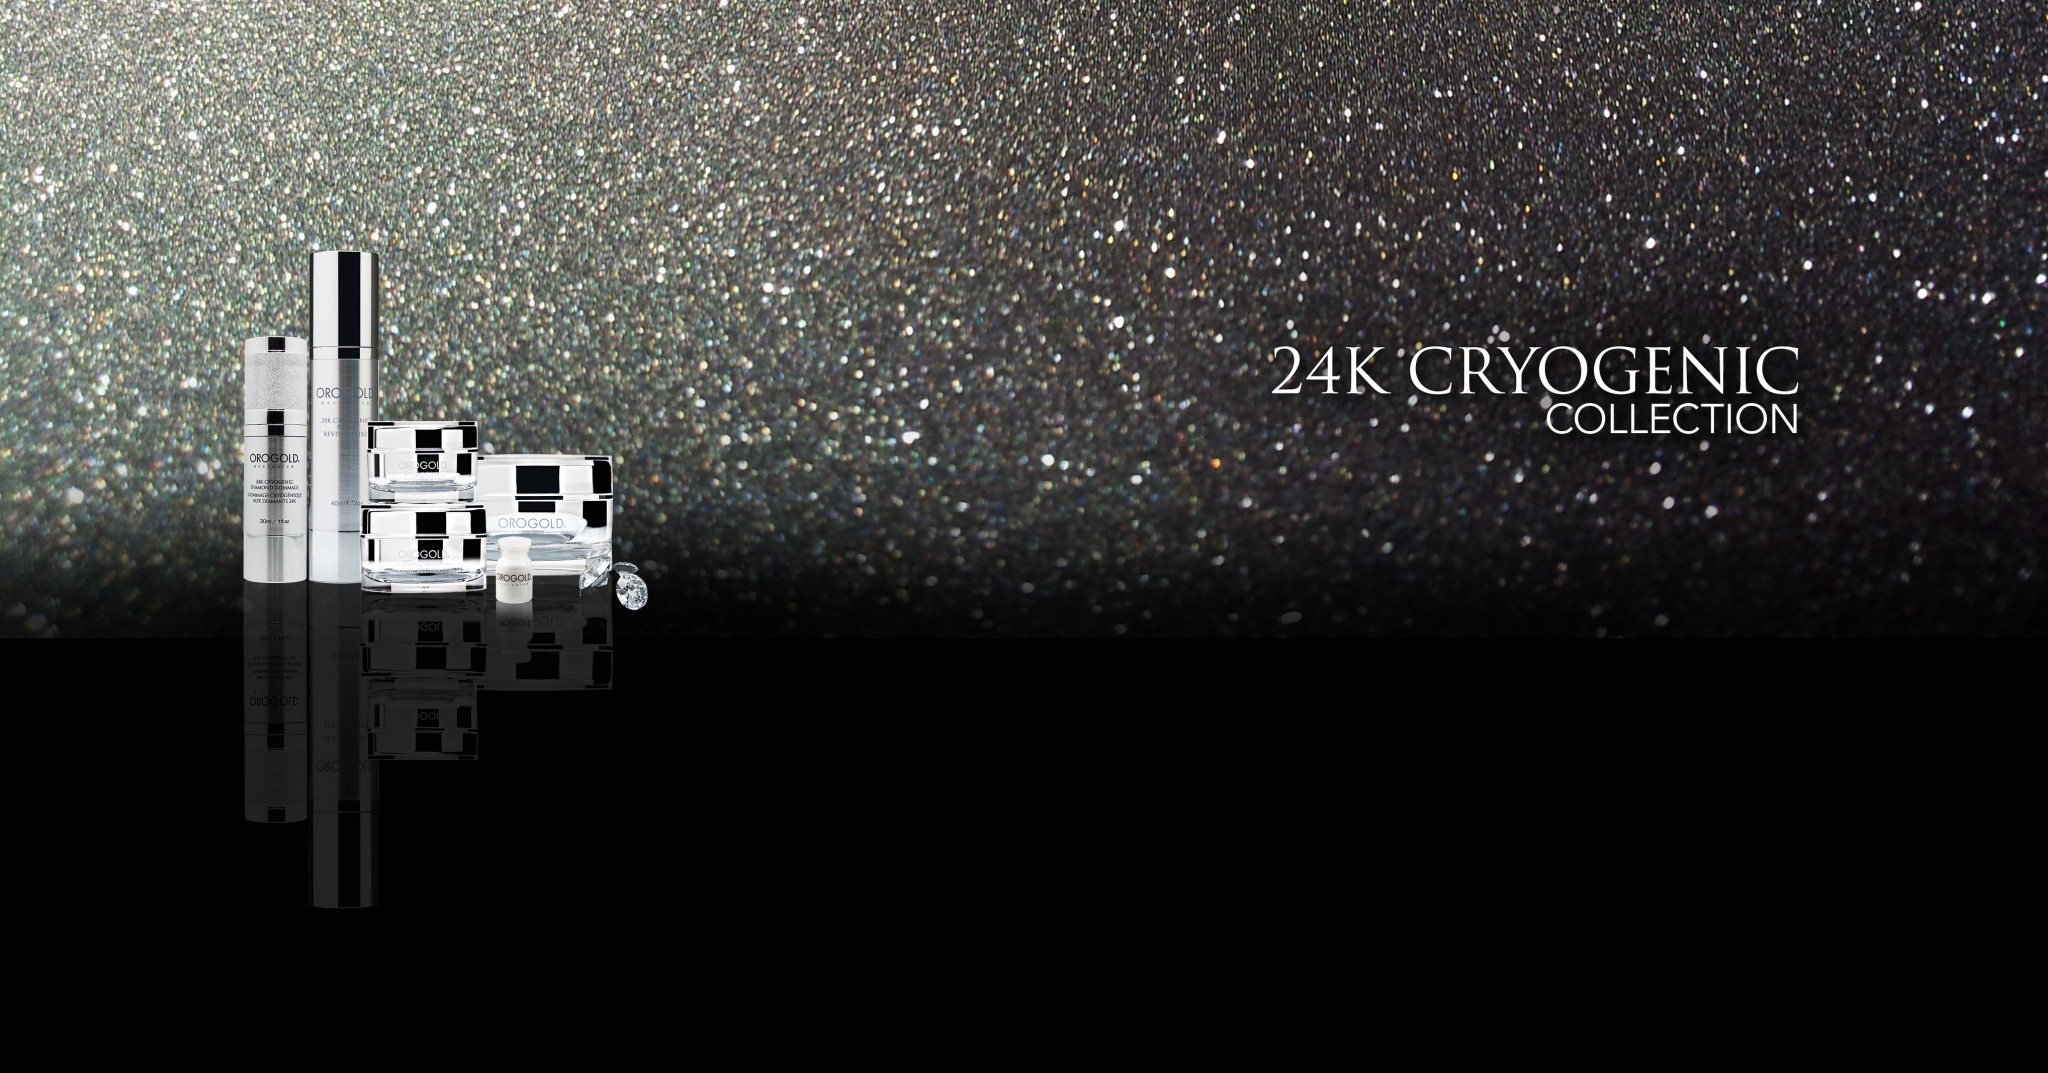 24K CryogeniC Collection